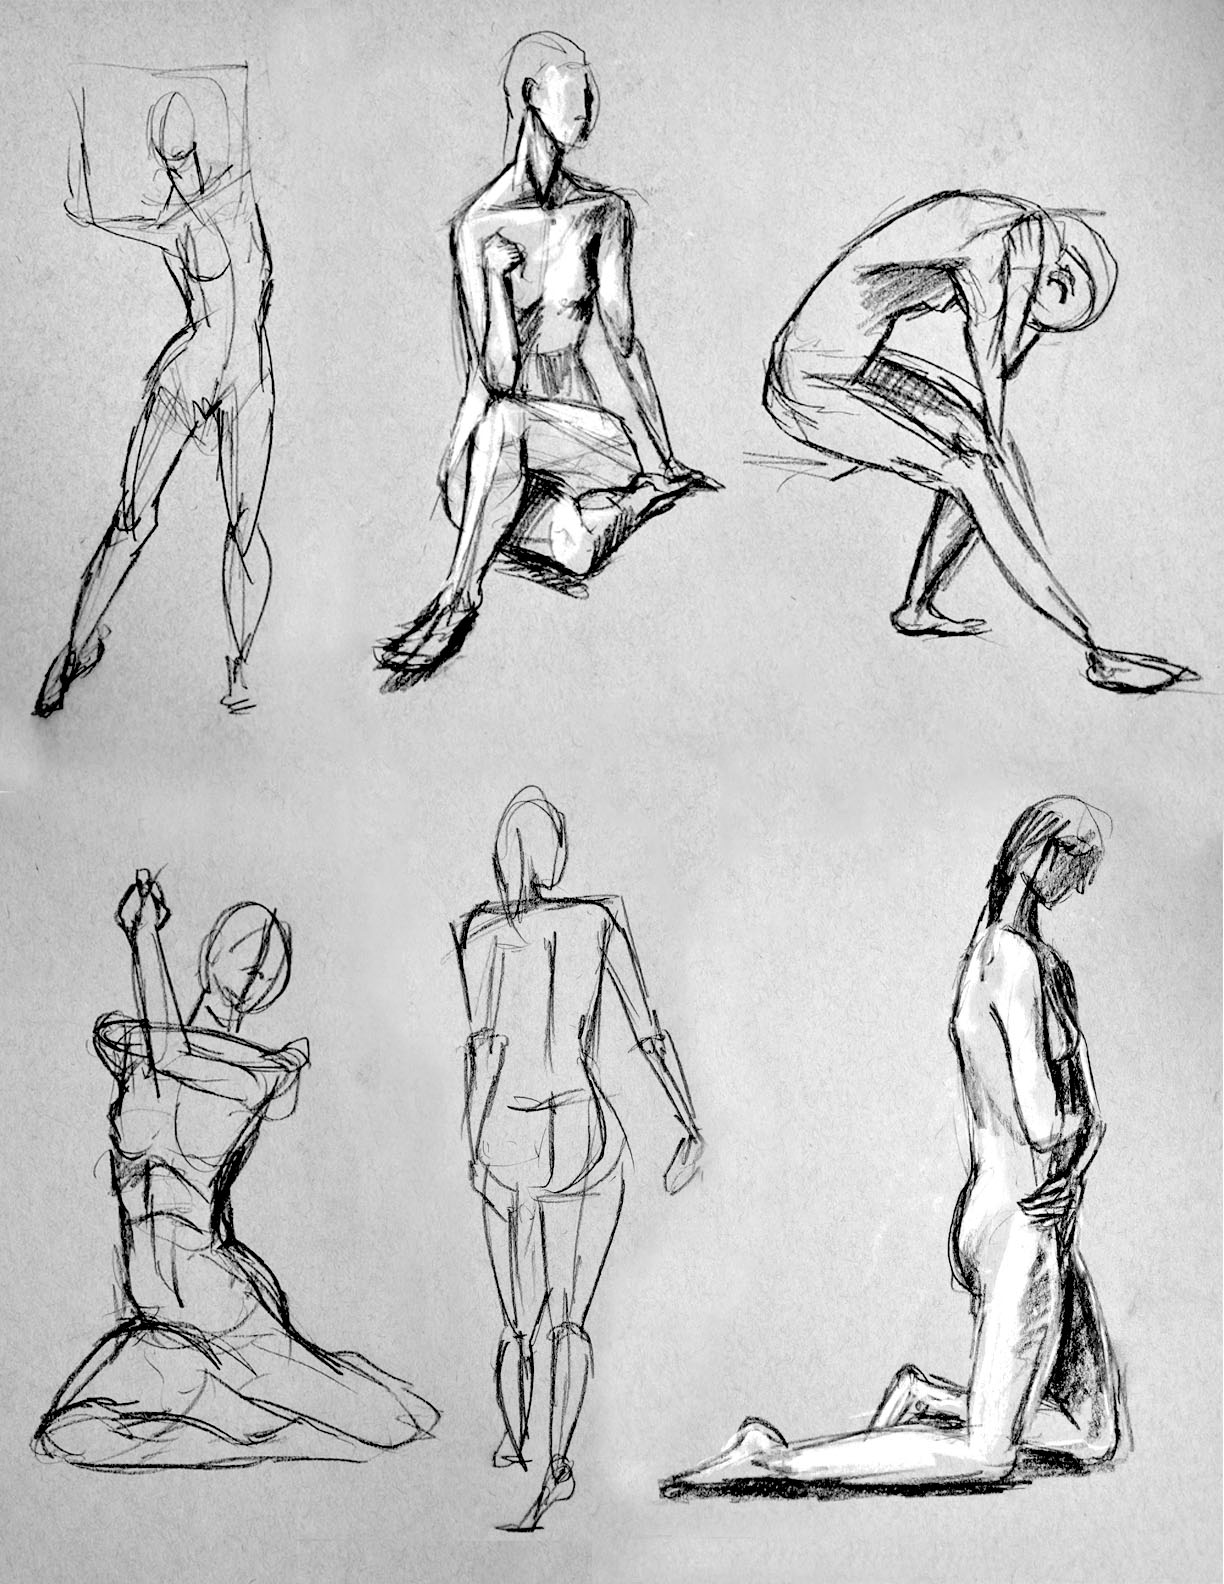 Gestures 30 seconds to 5 minutes May 2016